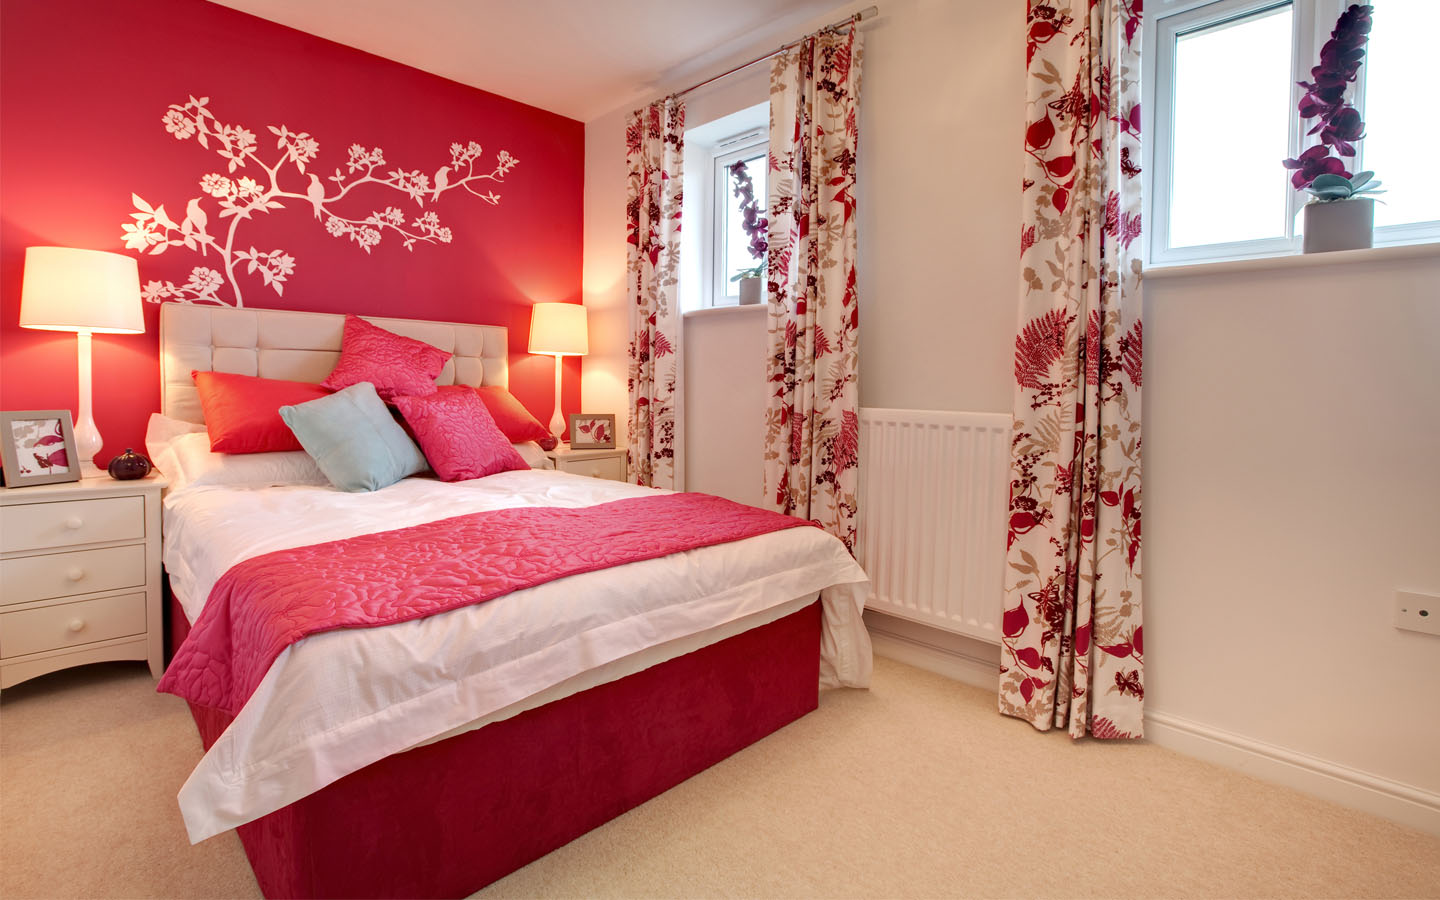 Red coloured bedroom.